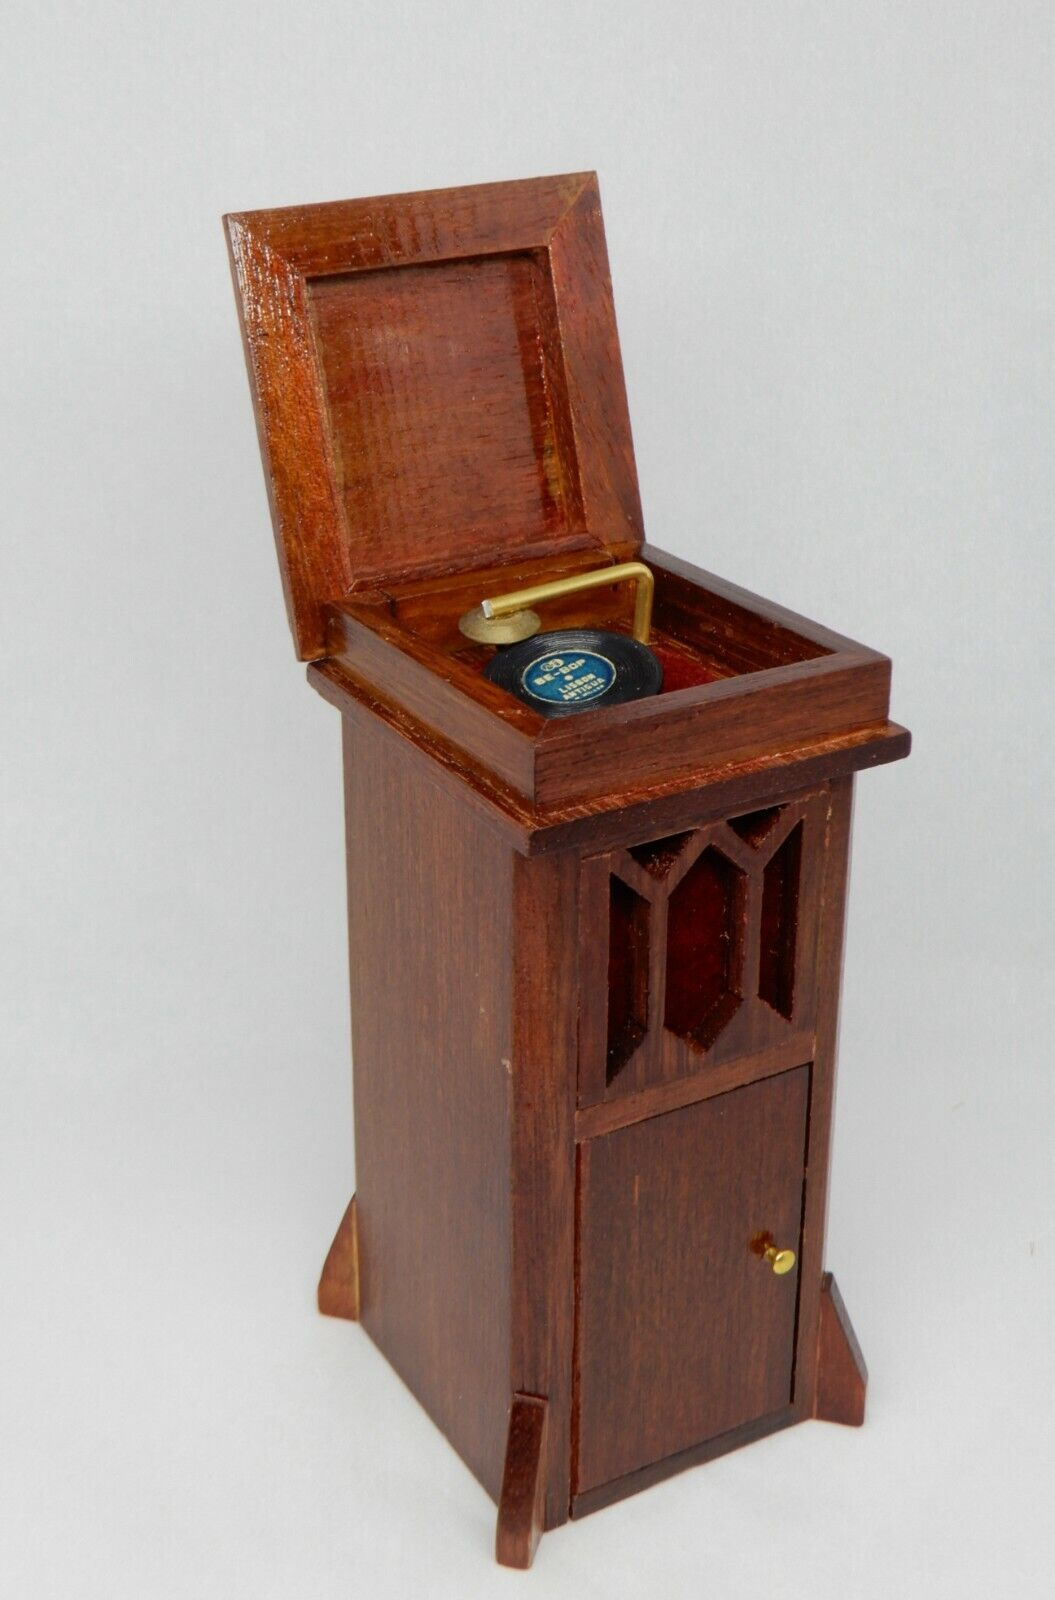 Vintage Record Player Cabinet W Records Dollhouse Miniature 1 12 - $19.99